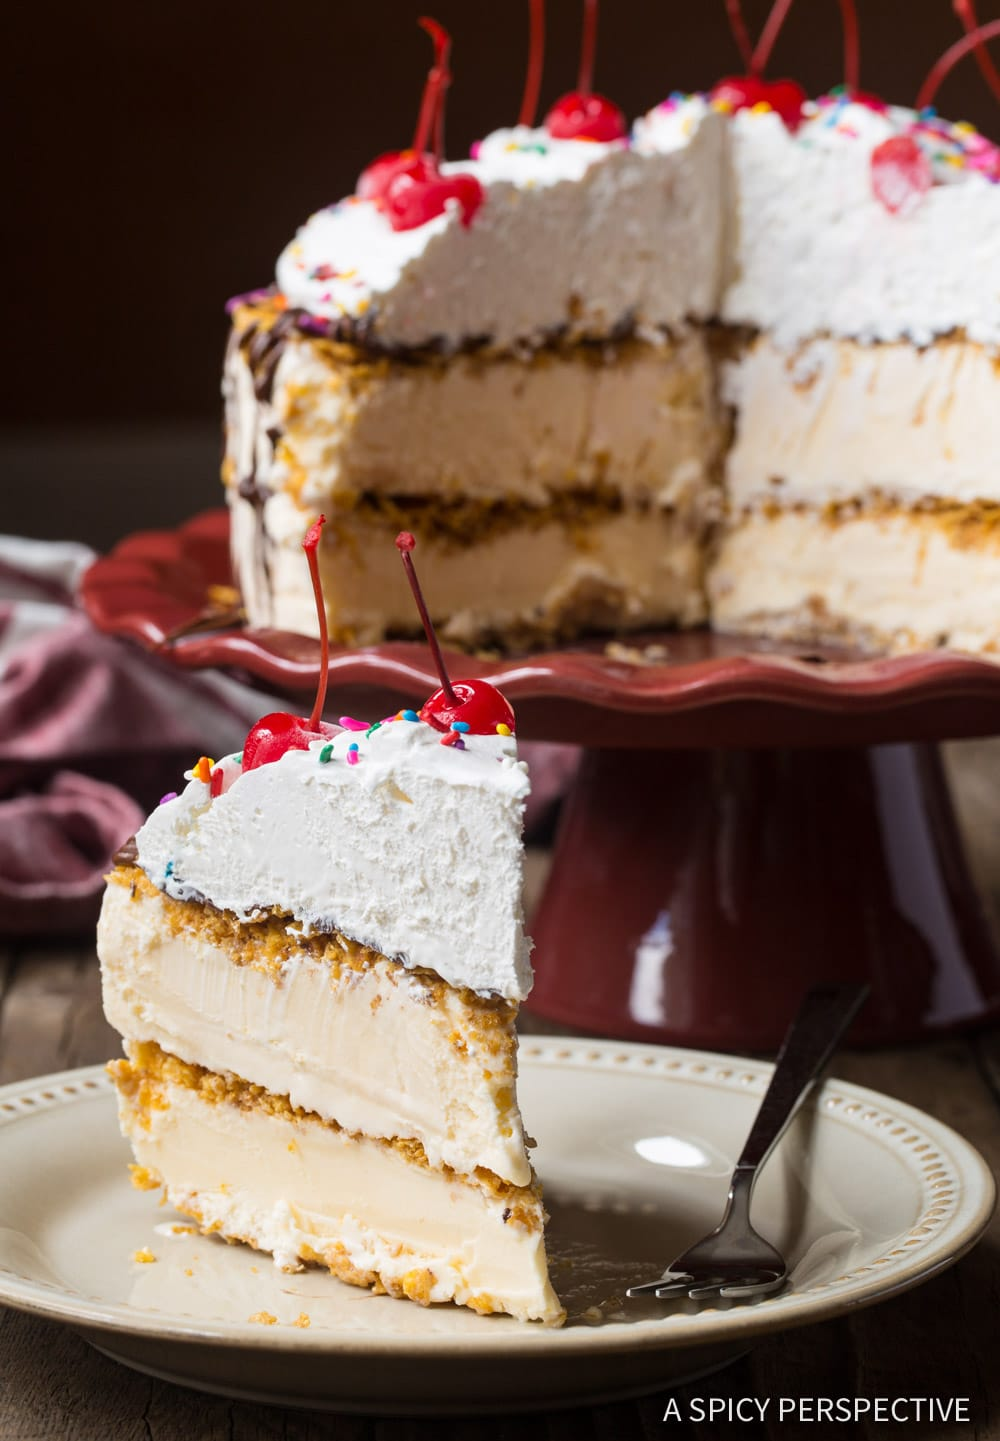 Decadent Mexican Fried Ice Cream Cake Recipe #ASpicyPerspective